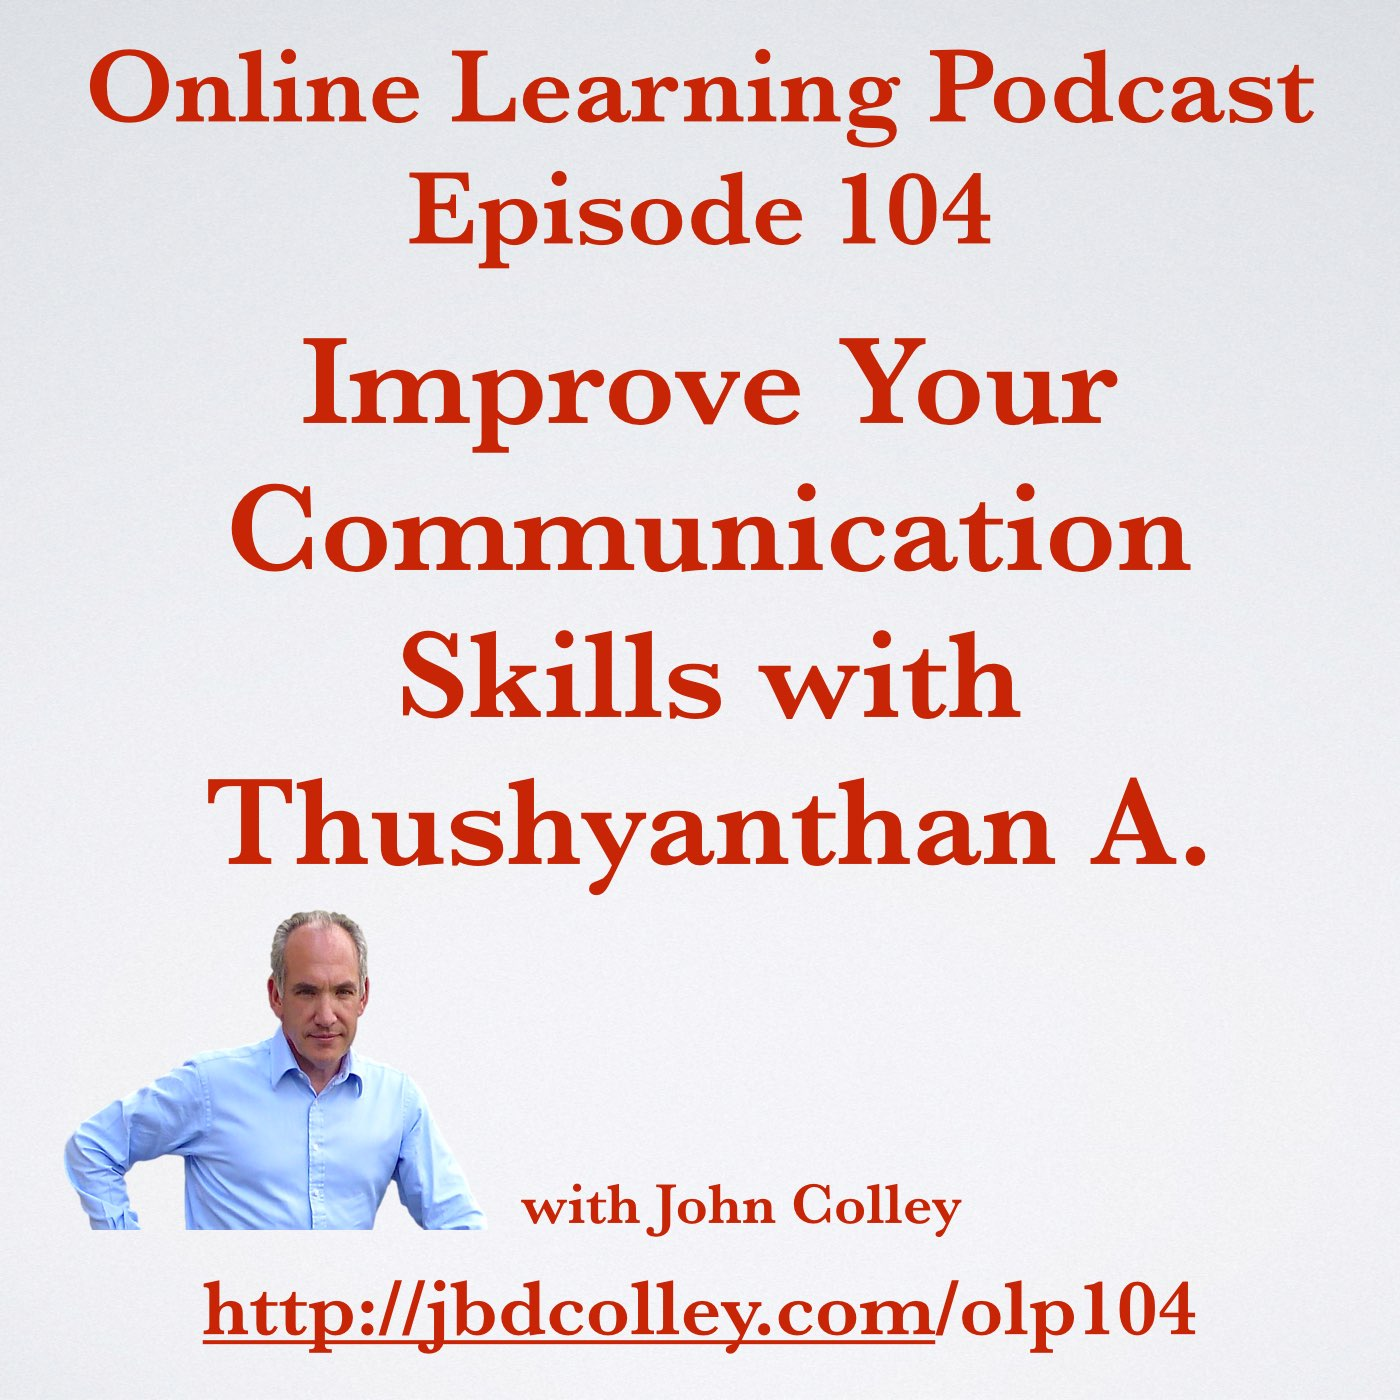 OLP104 Improve Your Communication Skills with Thushyanthan A.